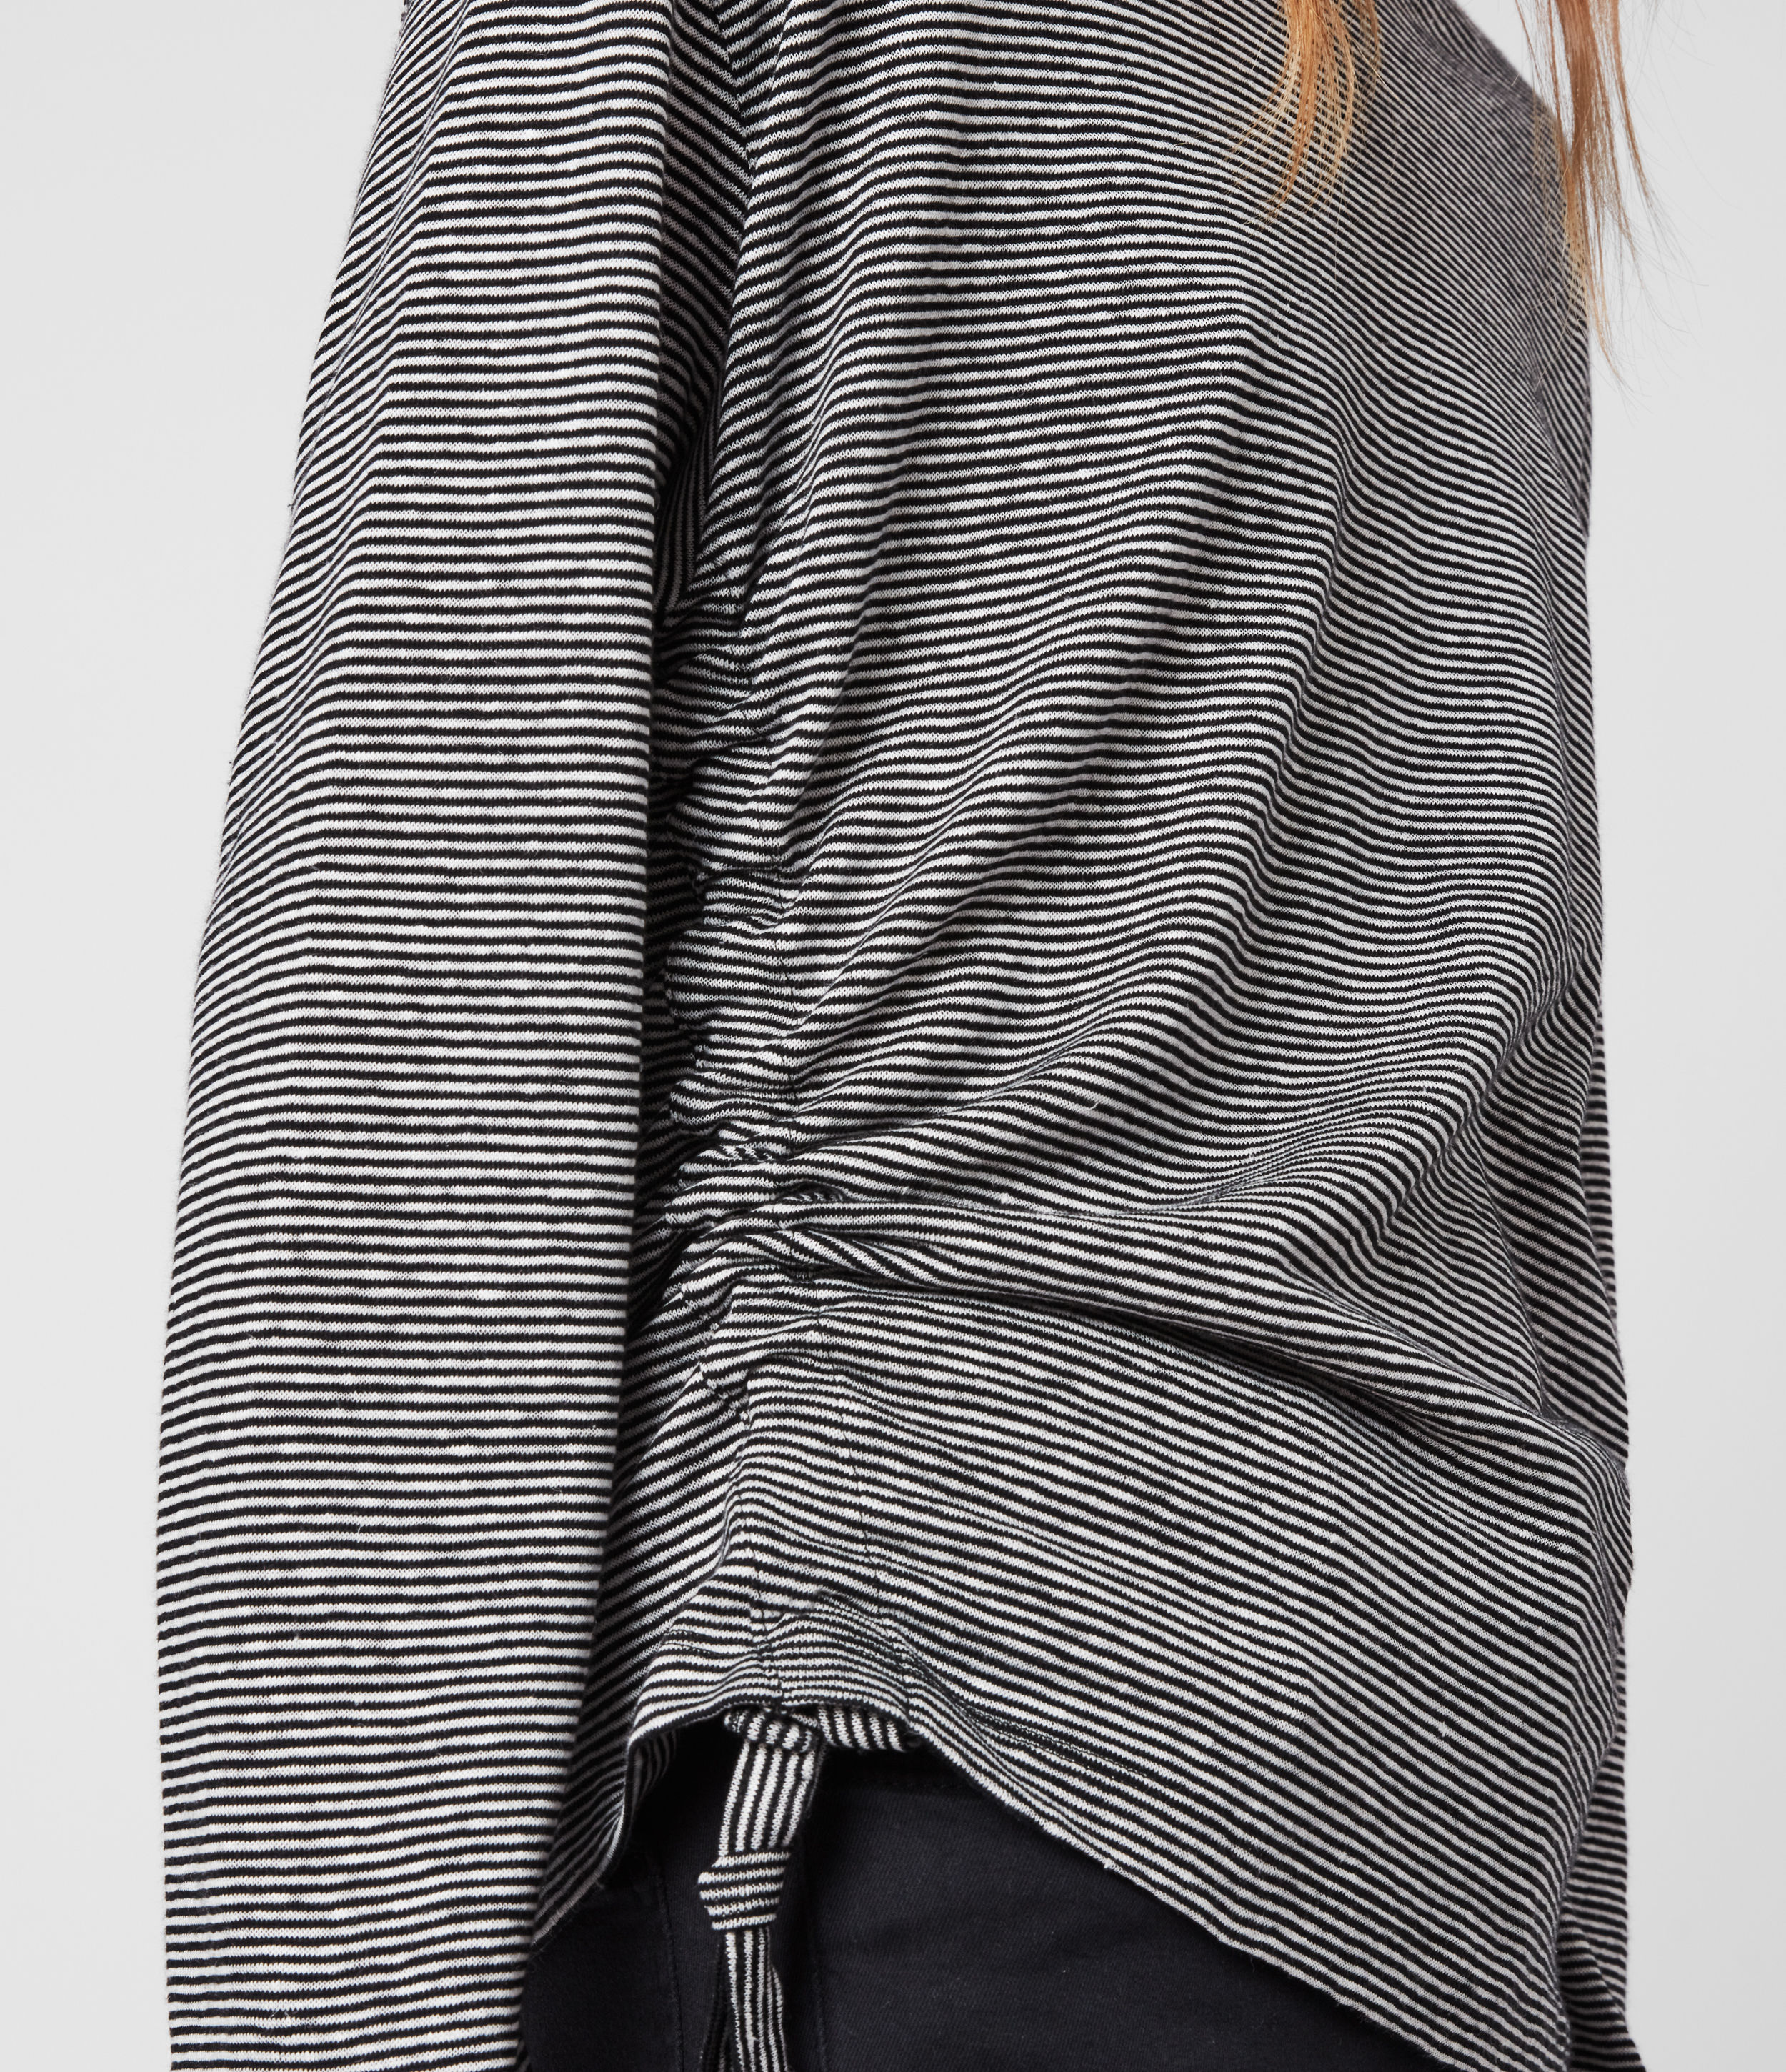 AllSaints Women's Cotton Stripe Relaxed Fit Ryder Lin Long Sleeve T-Shirt, Black and White, Size: XS